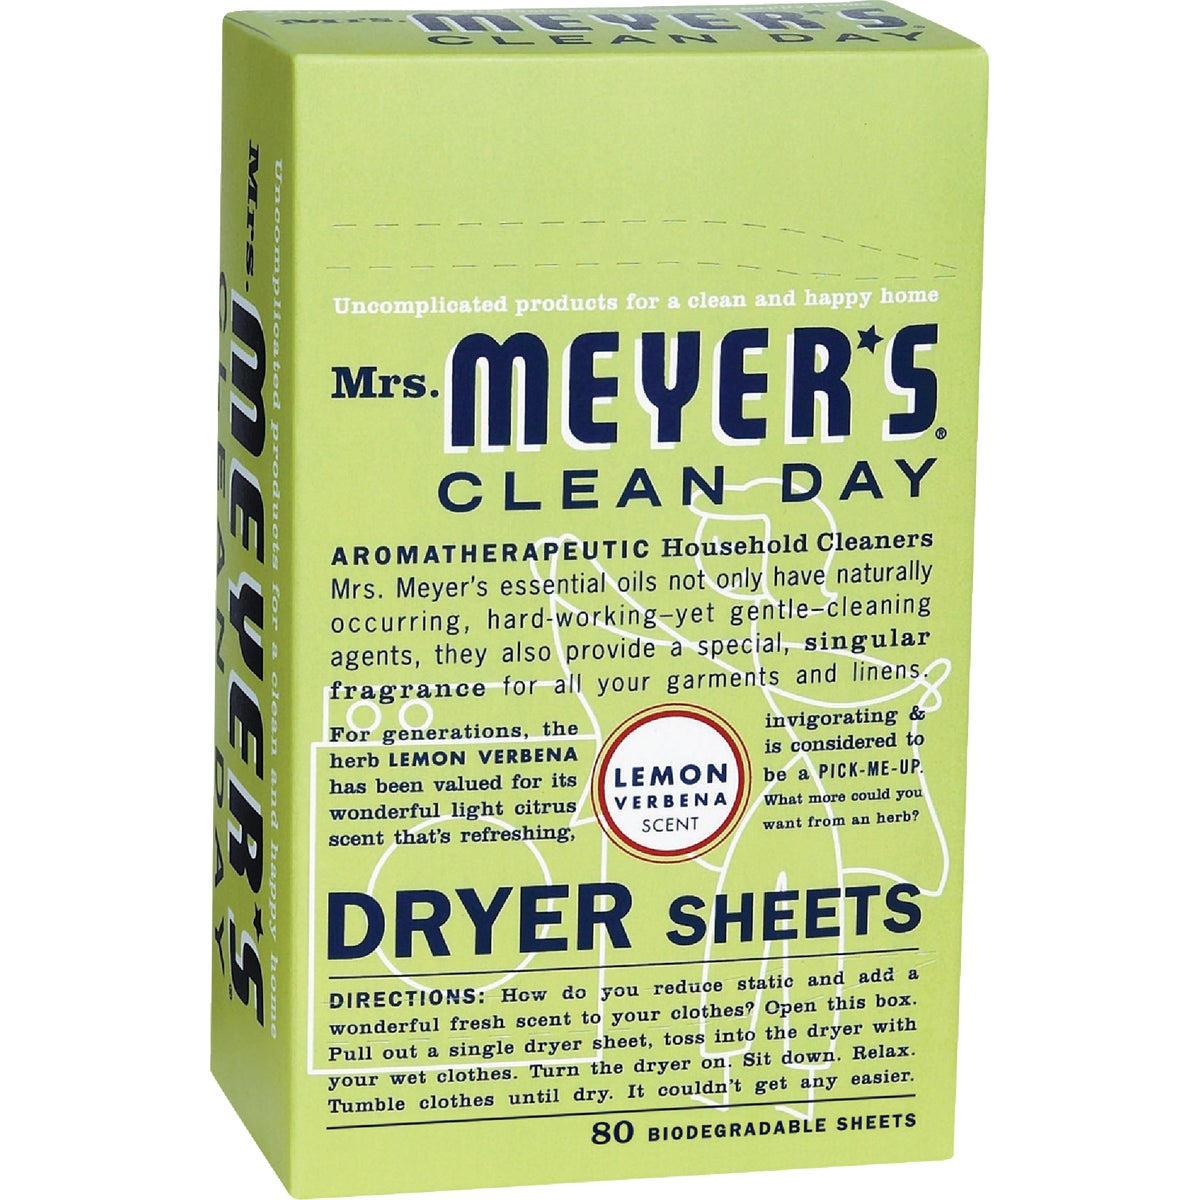 LEMON DRYER SHEETS - 14248 by Mrs Meyers Clean Day